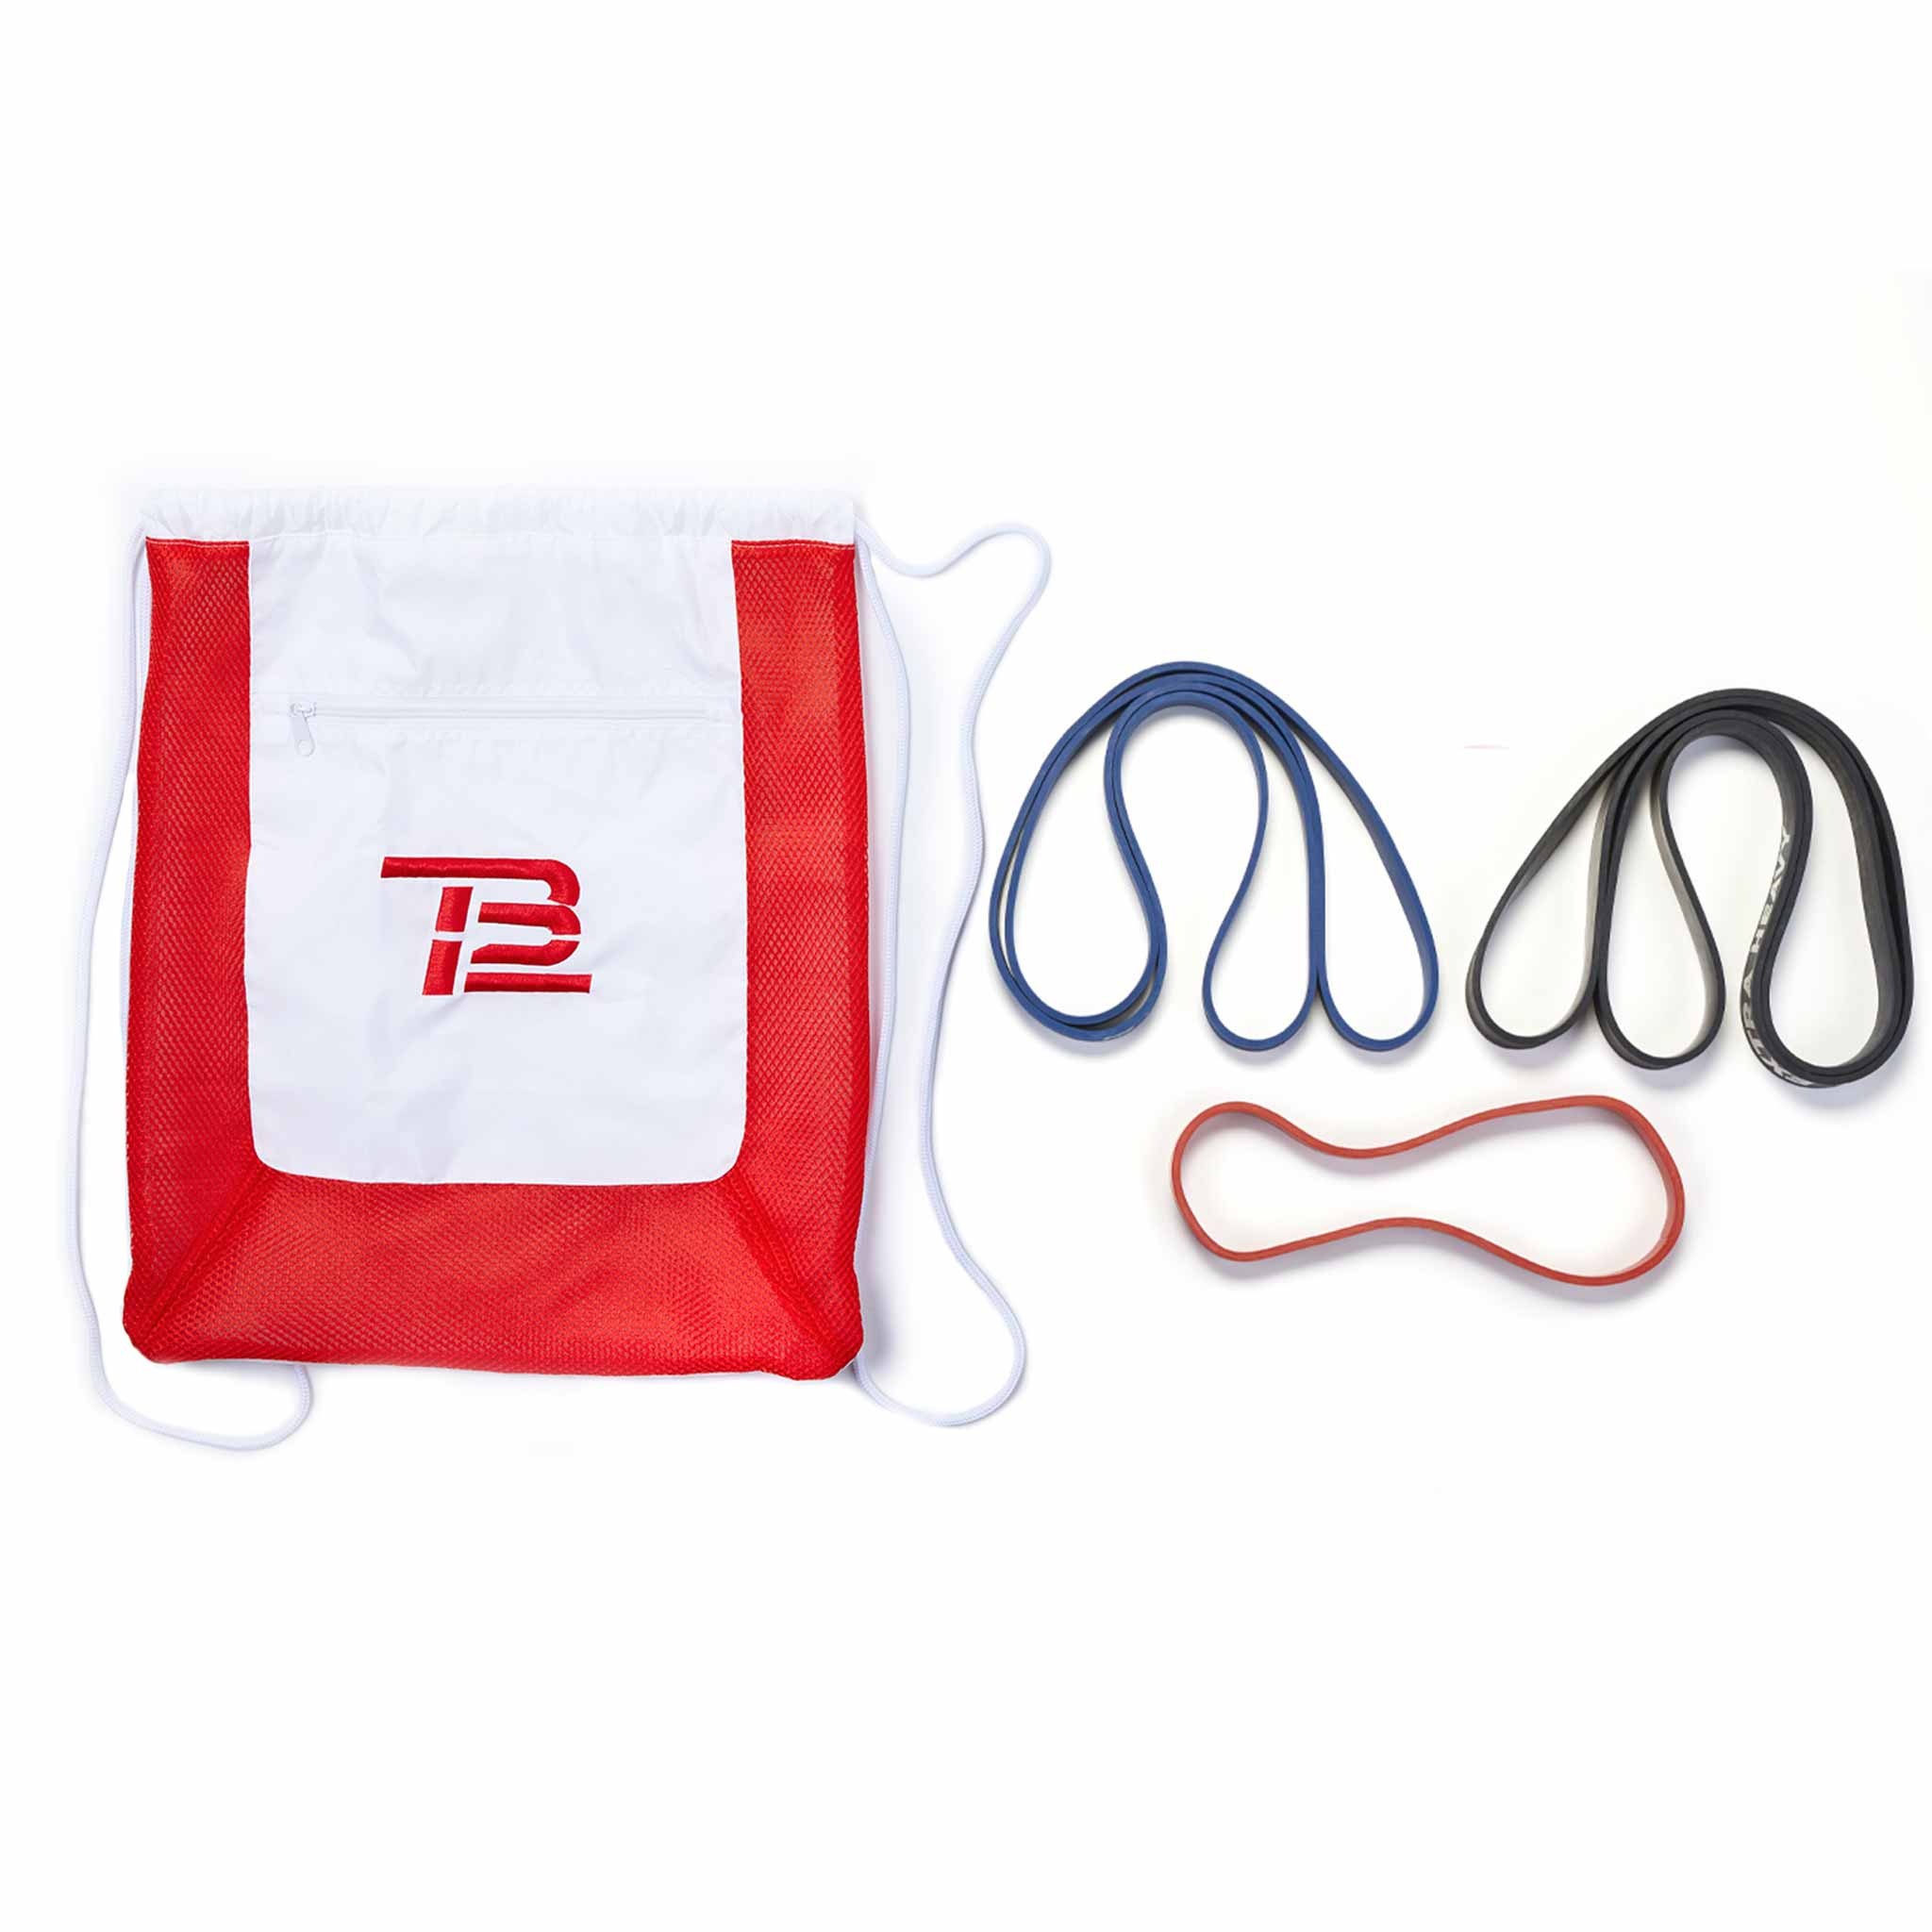 TB12™ On-the-Go Looped Band Kit Level 3